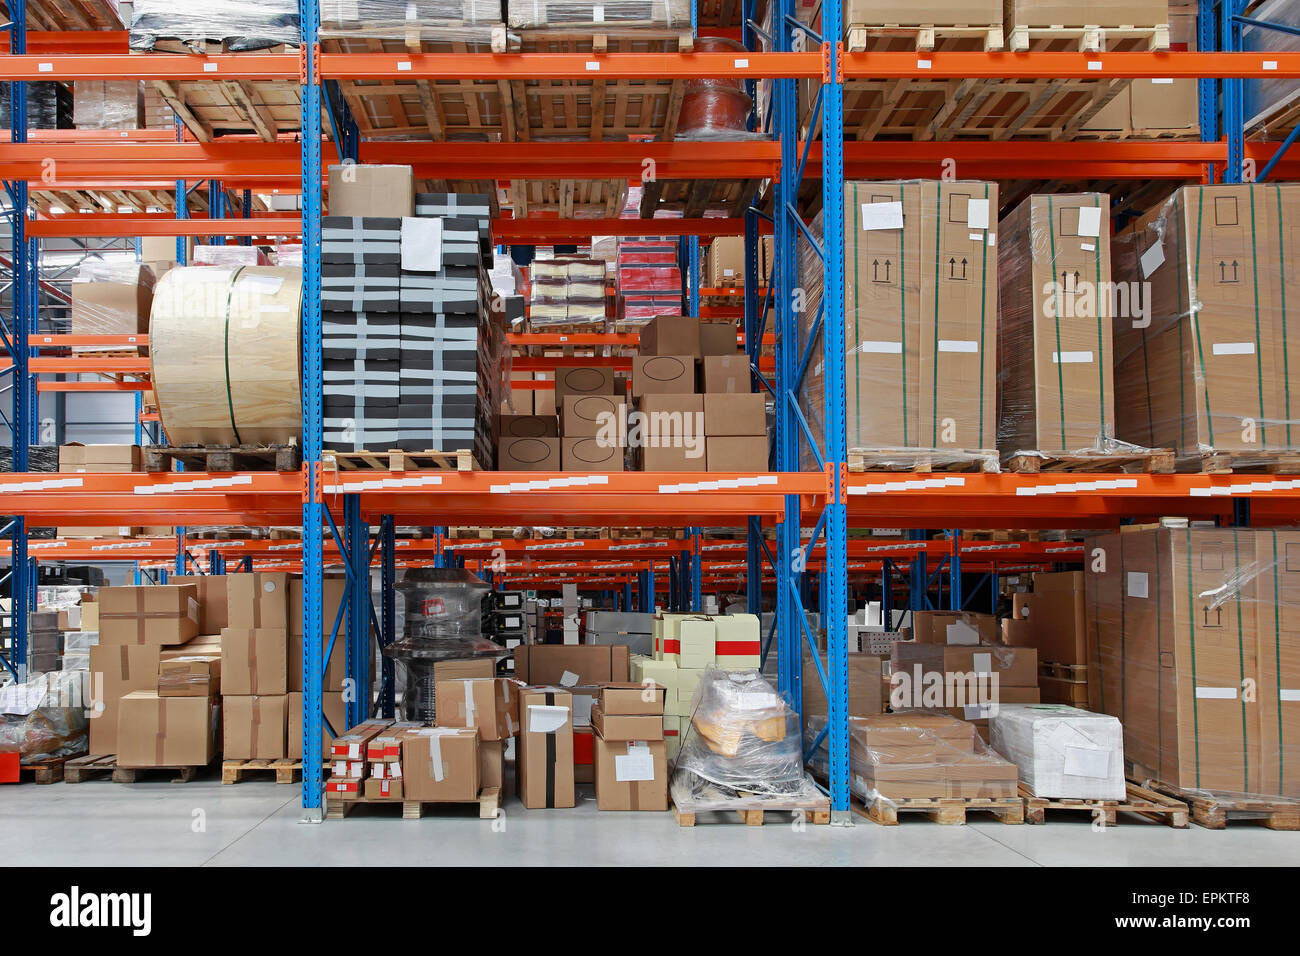 Warehouse - Stock Image